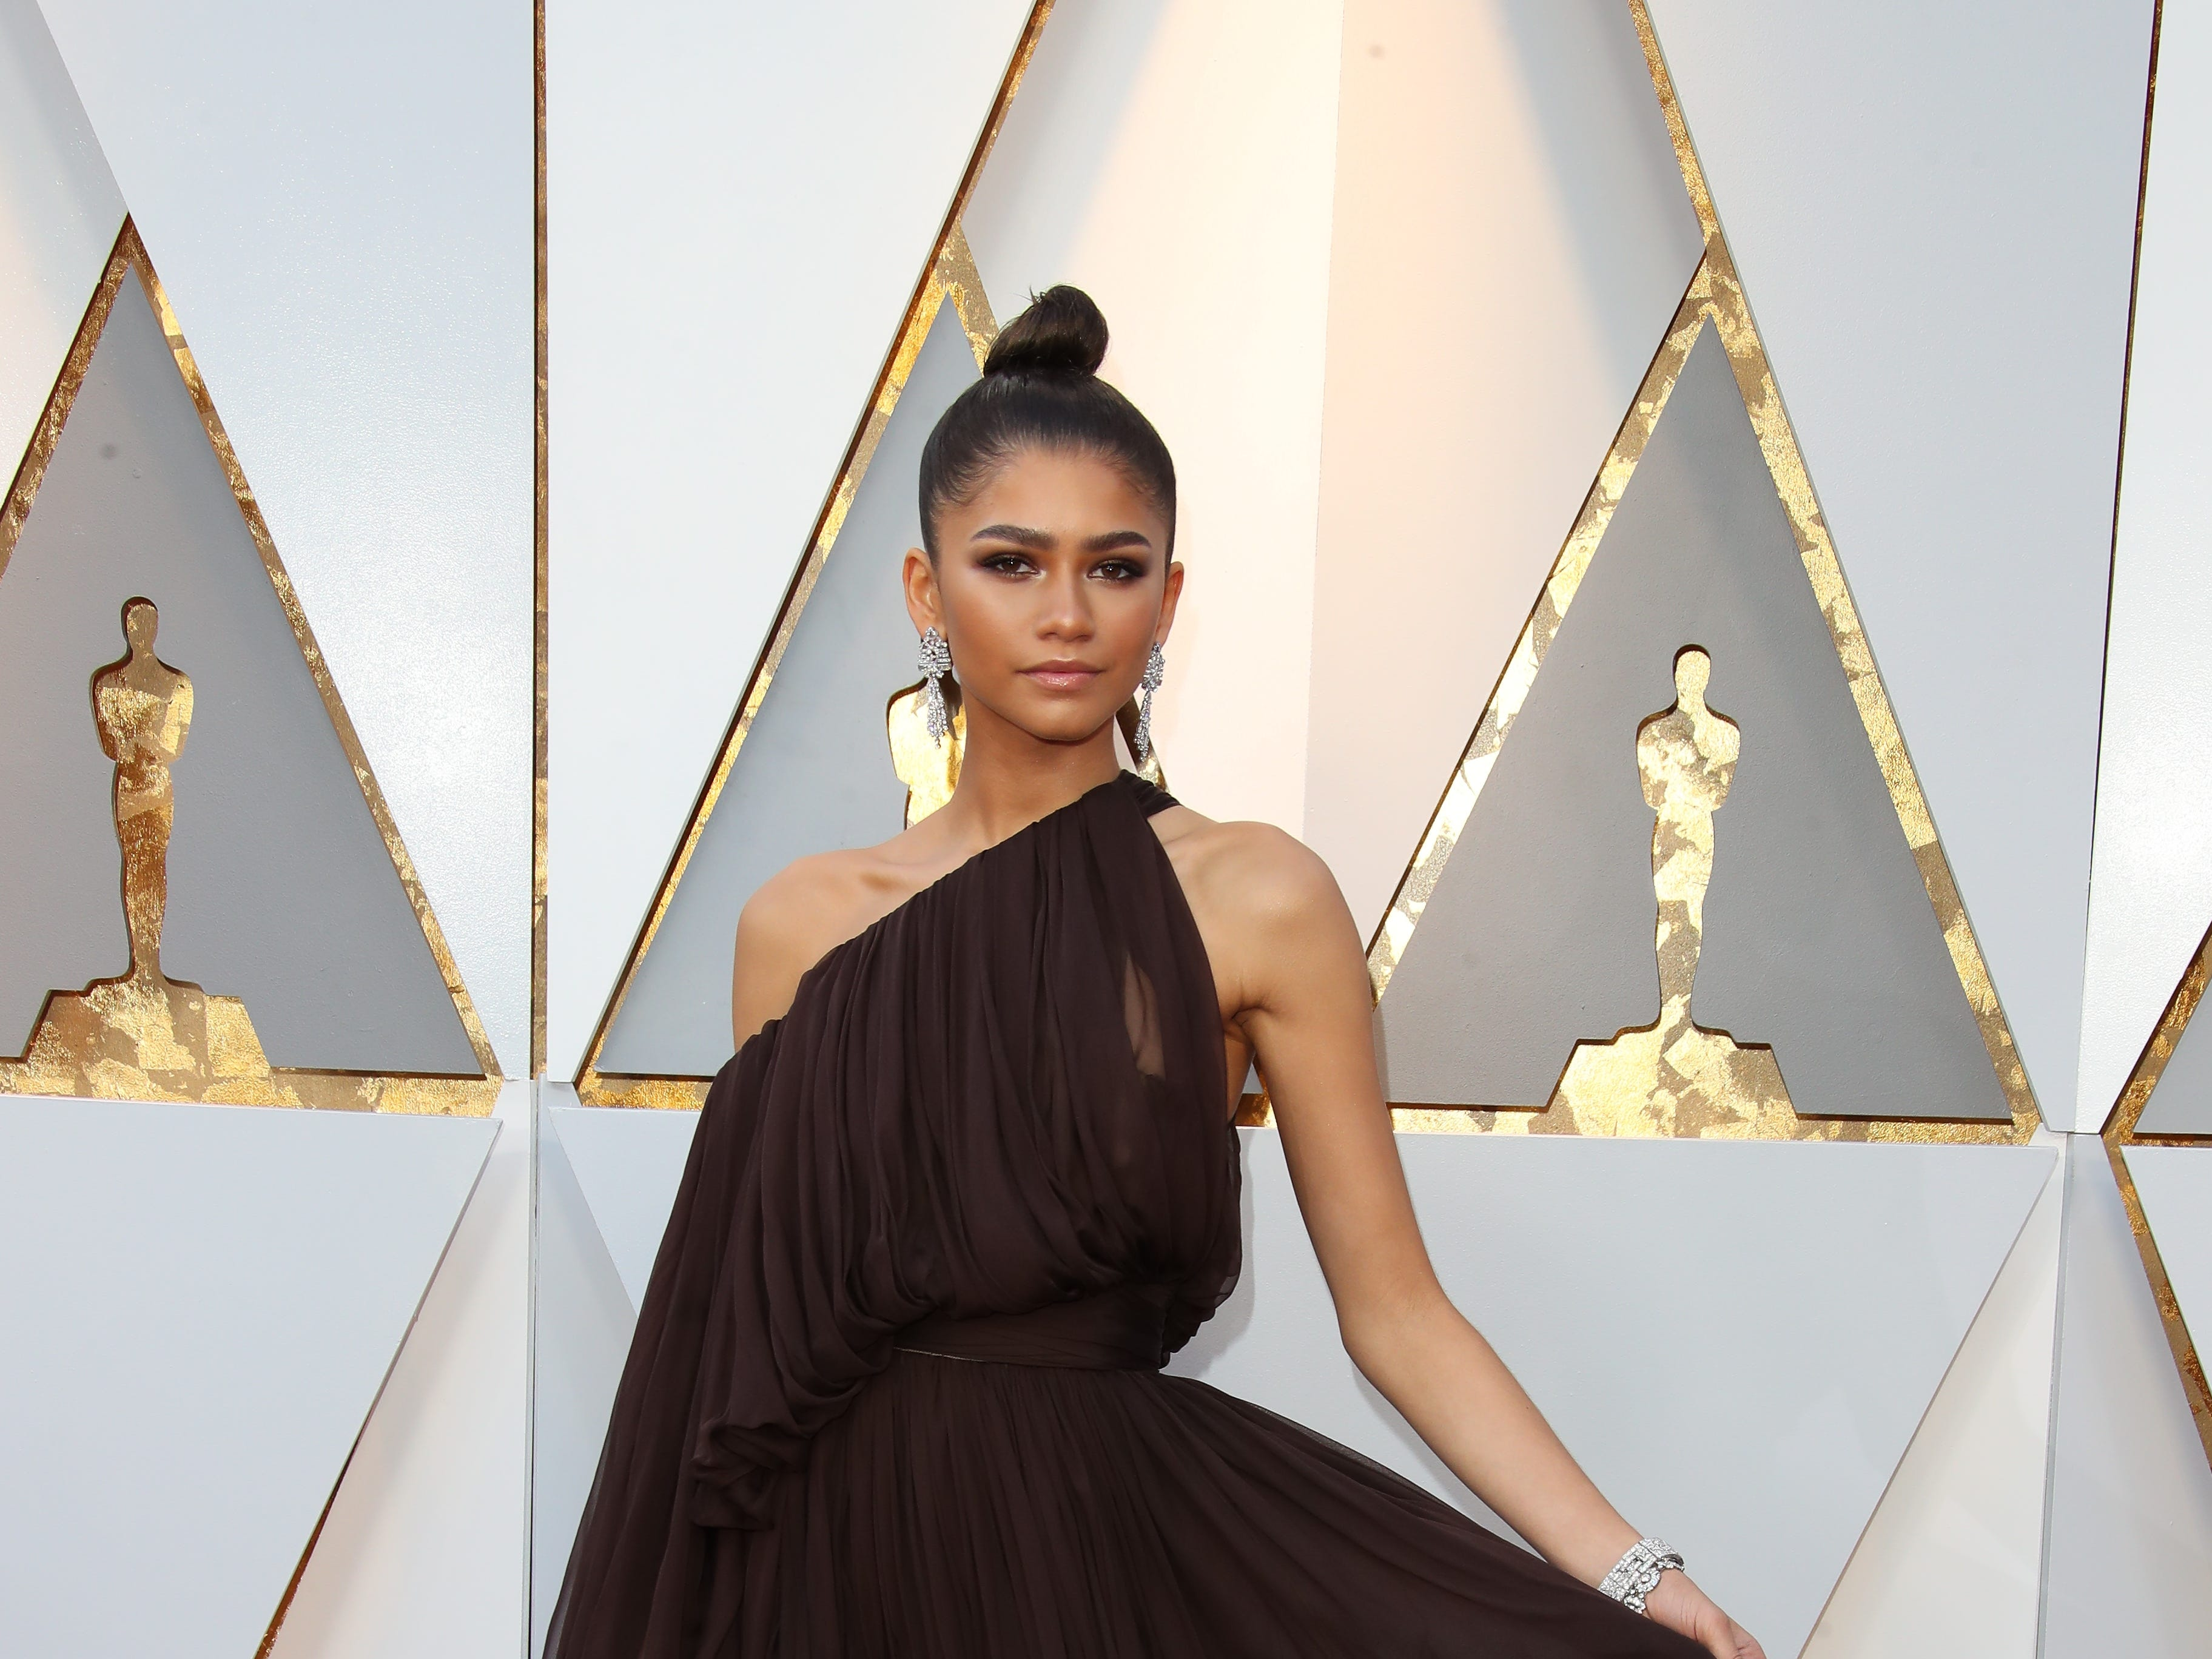 March 4, 2018; Hollywood, CA, USA; Zendaya arrives at the 90th Academy Awards at Dolby Theatre. Mandatory Credit: Dan MacMedan-USA TODAY NETWORK (Via OlyDrop)